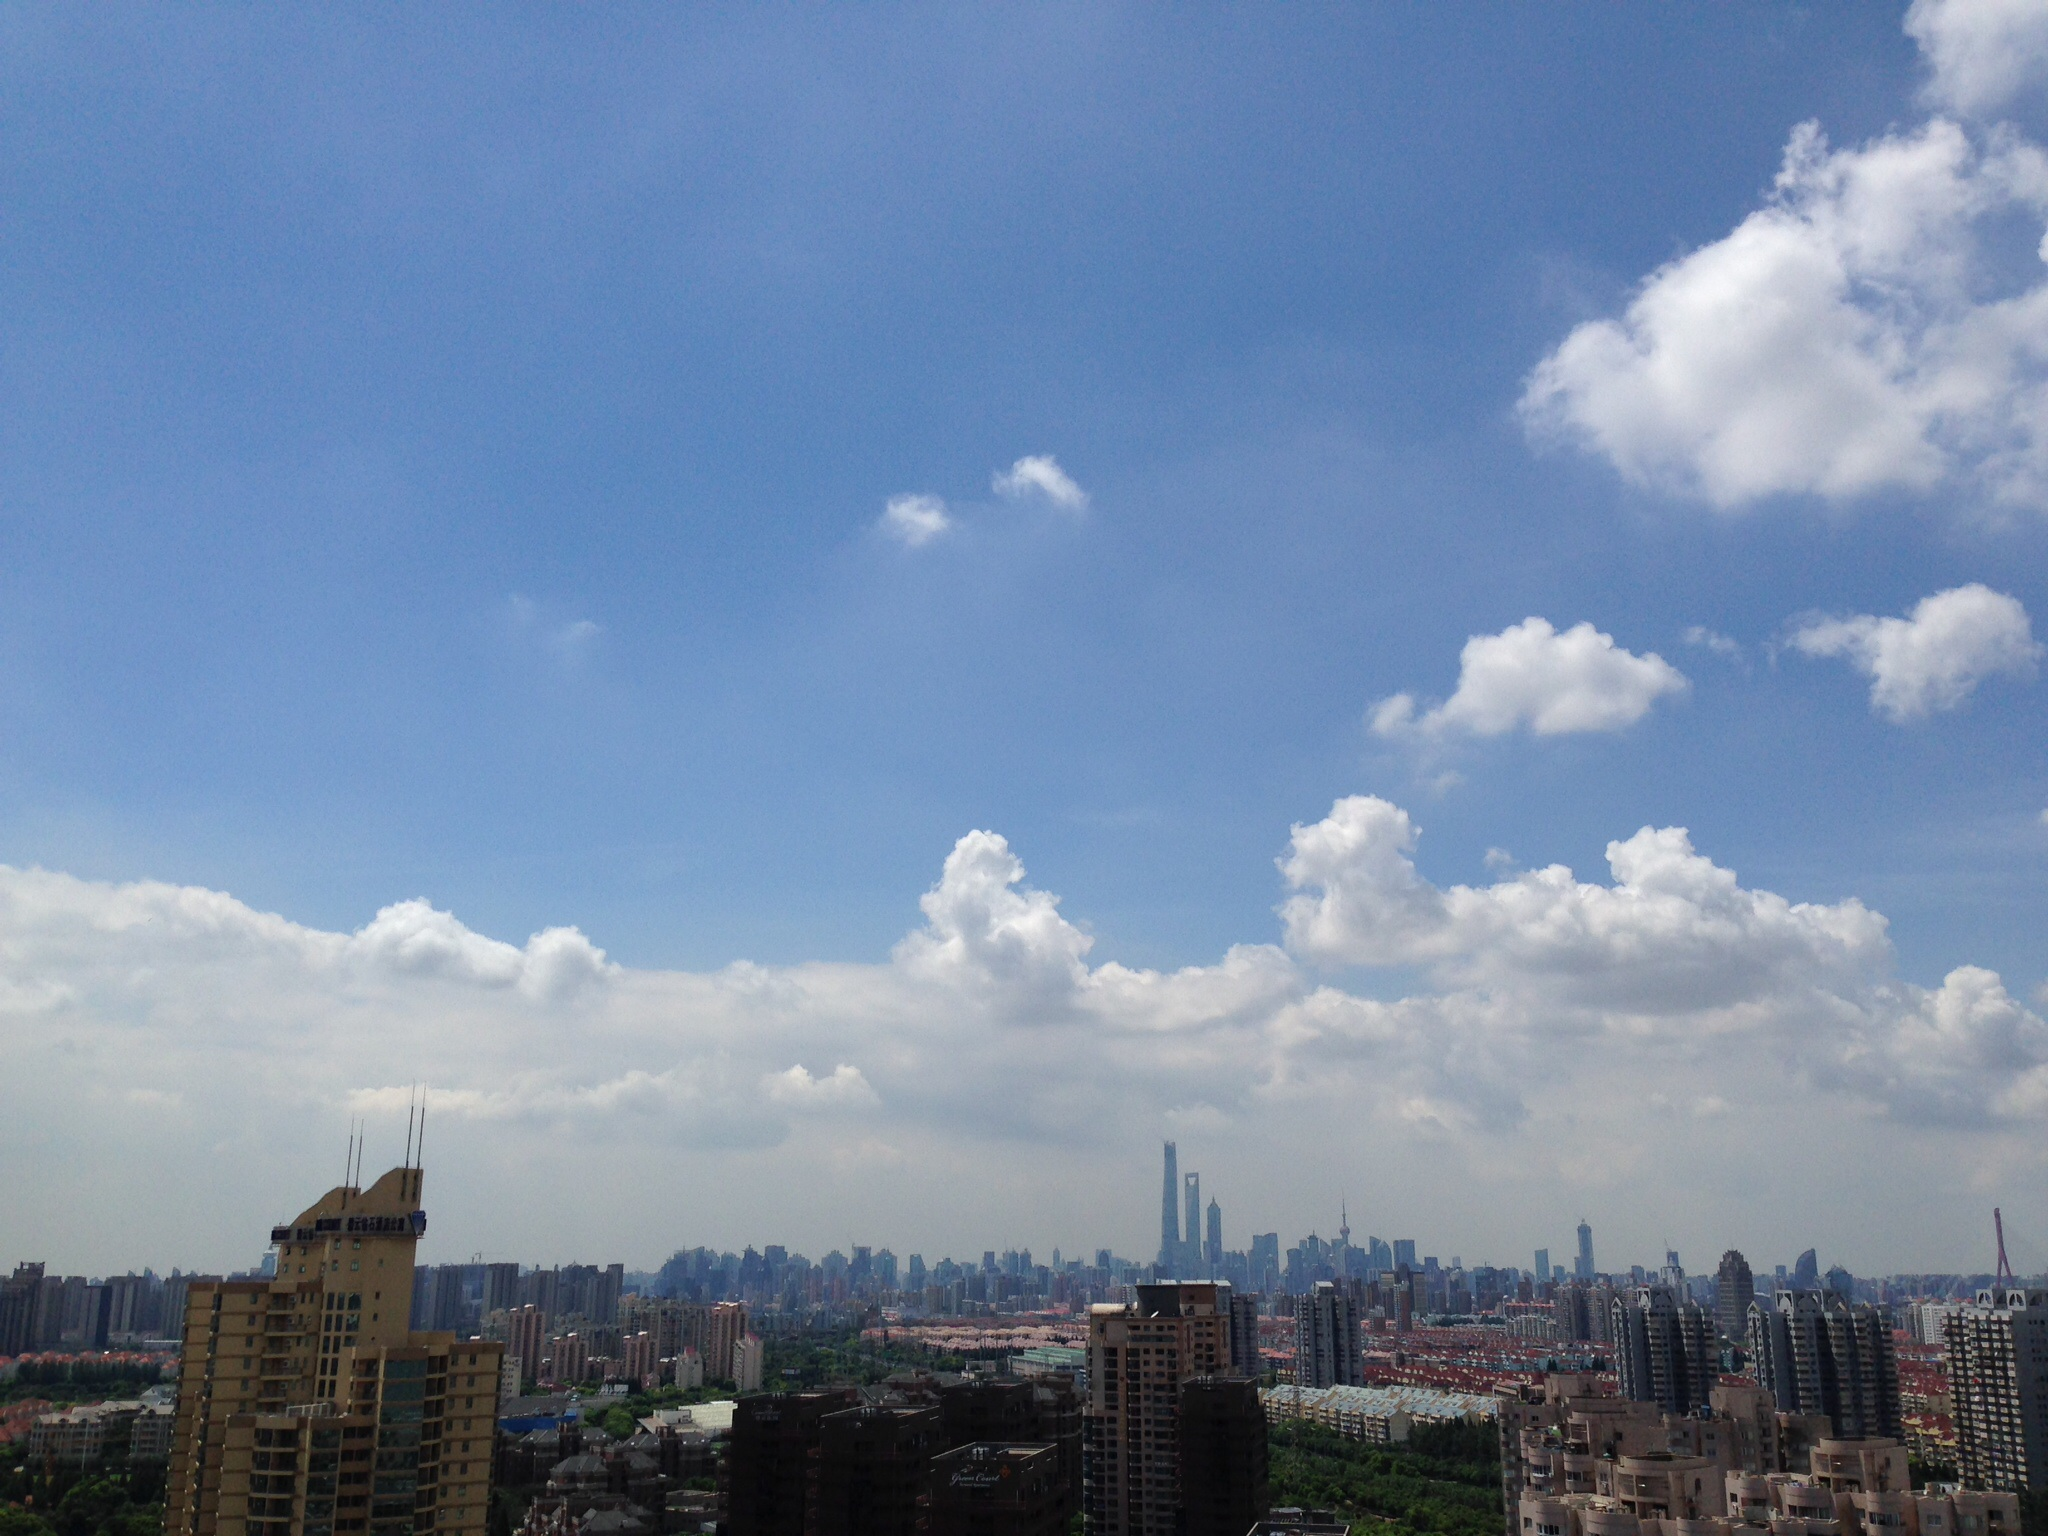 The view from our hotel in Pudong.